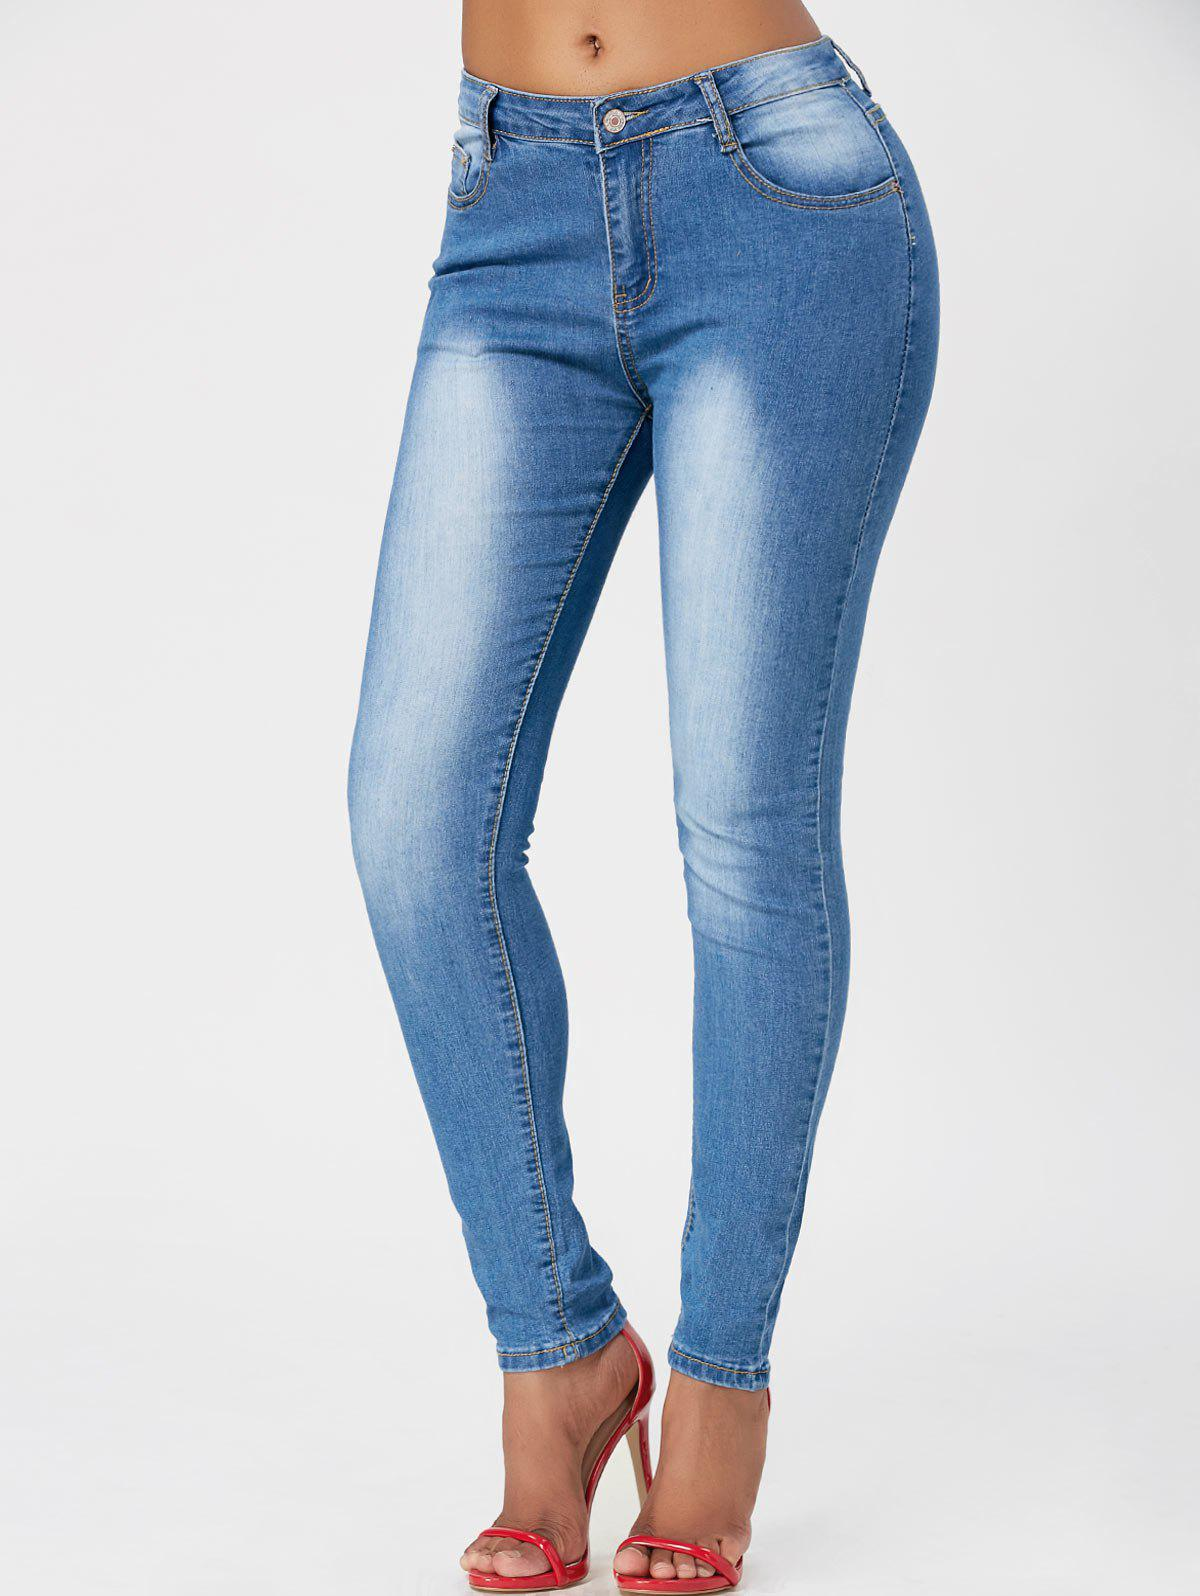 Washed High Waisted Skinny JeansWOMEN<br><br>Size: XL; Color: BLUE; Material: Cotton,Polyester,Spandex; Length: Normal; Fabric Type: Denim; Wash: Light; Fit Type: Skinny; Waist Type: High; Embellishment: Pockets; Elasticity: Elastic; Weight: 0.4700kg; Package Contents: 1 x Jeans;